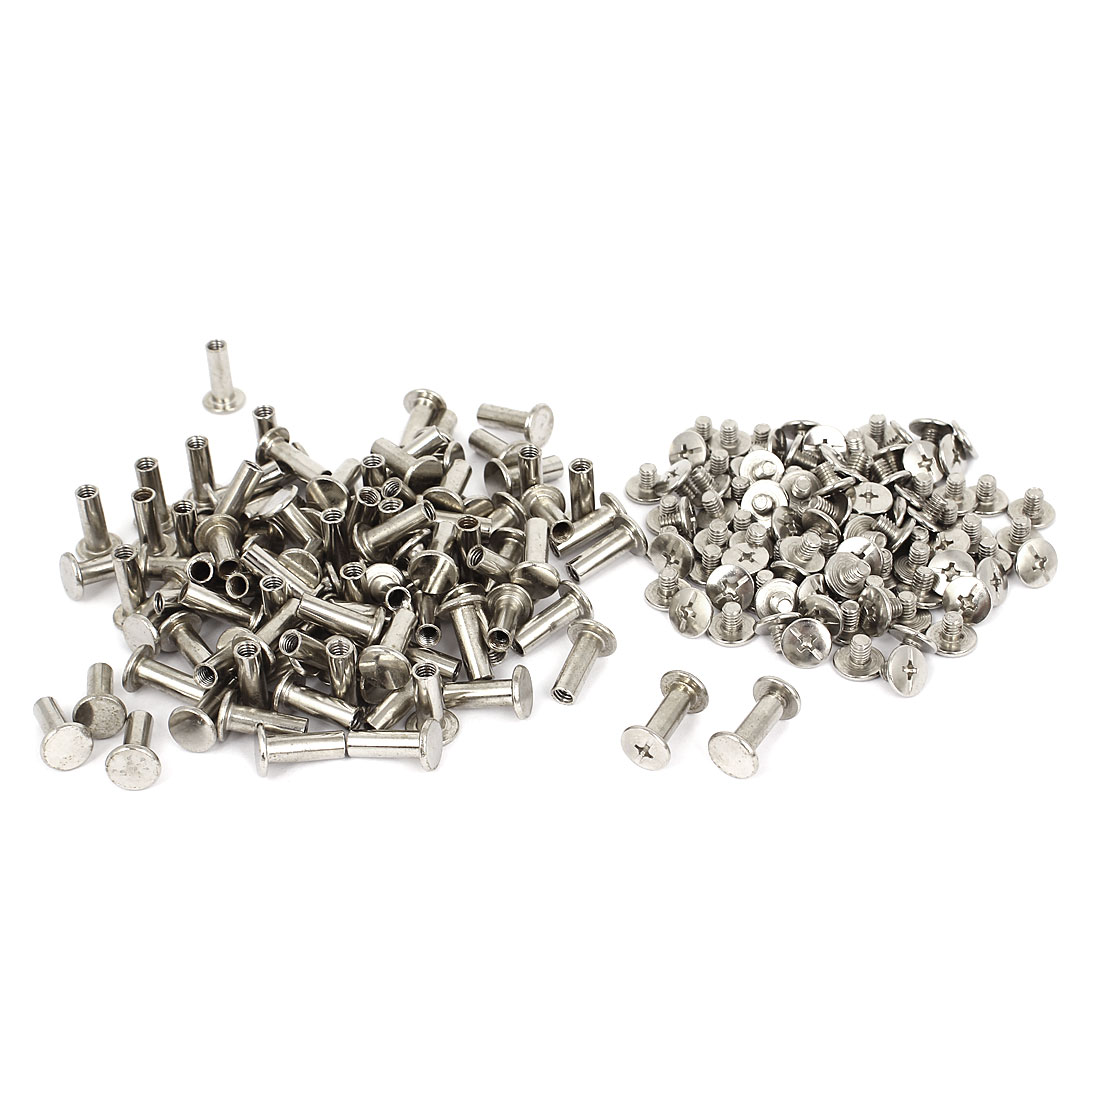 5mmx14mm Nickel Plated Binding Screw Post 100pcs for Scrapbook Photo Albums